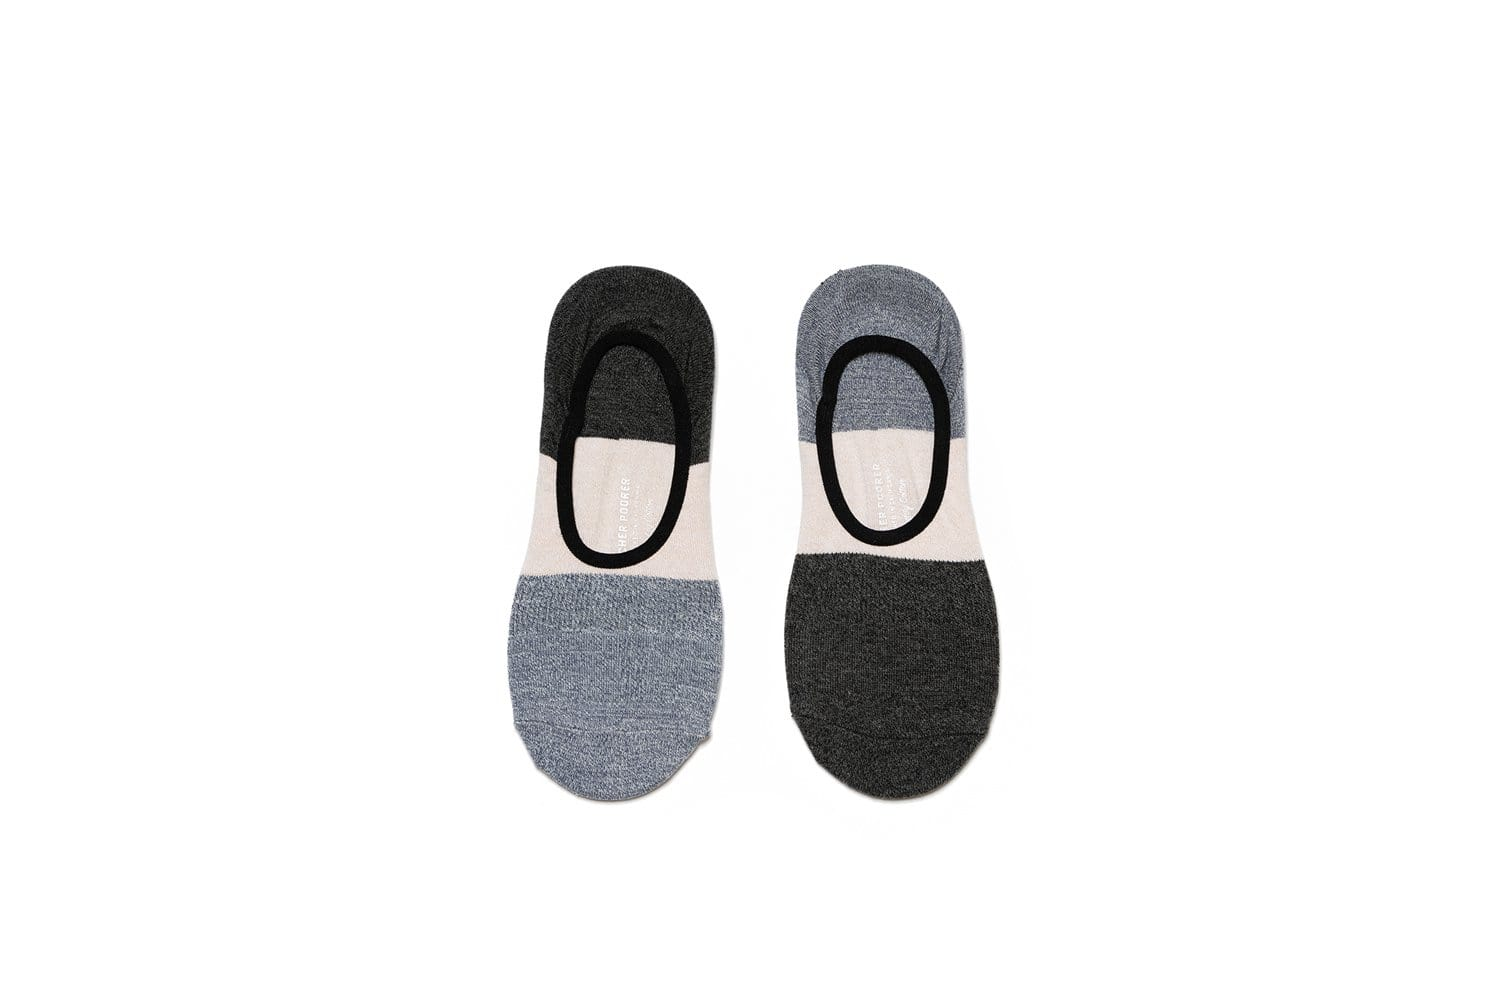 Mens No Show Socks - 2 Pack